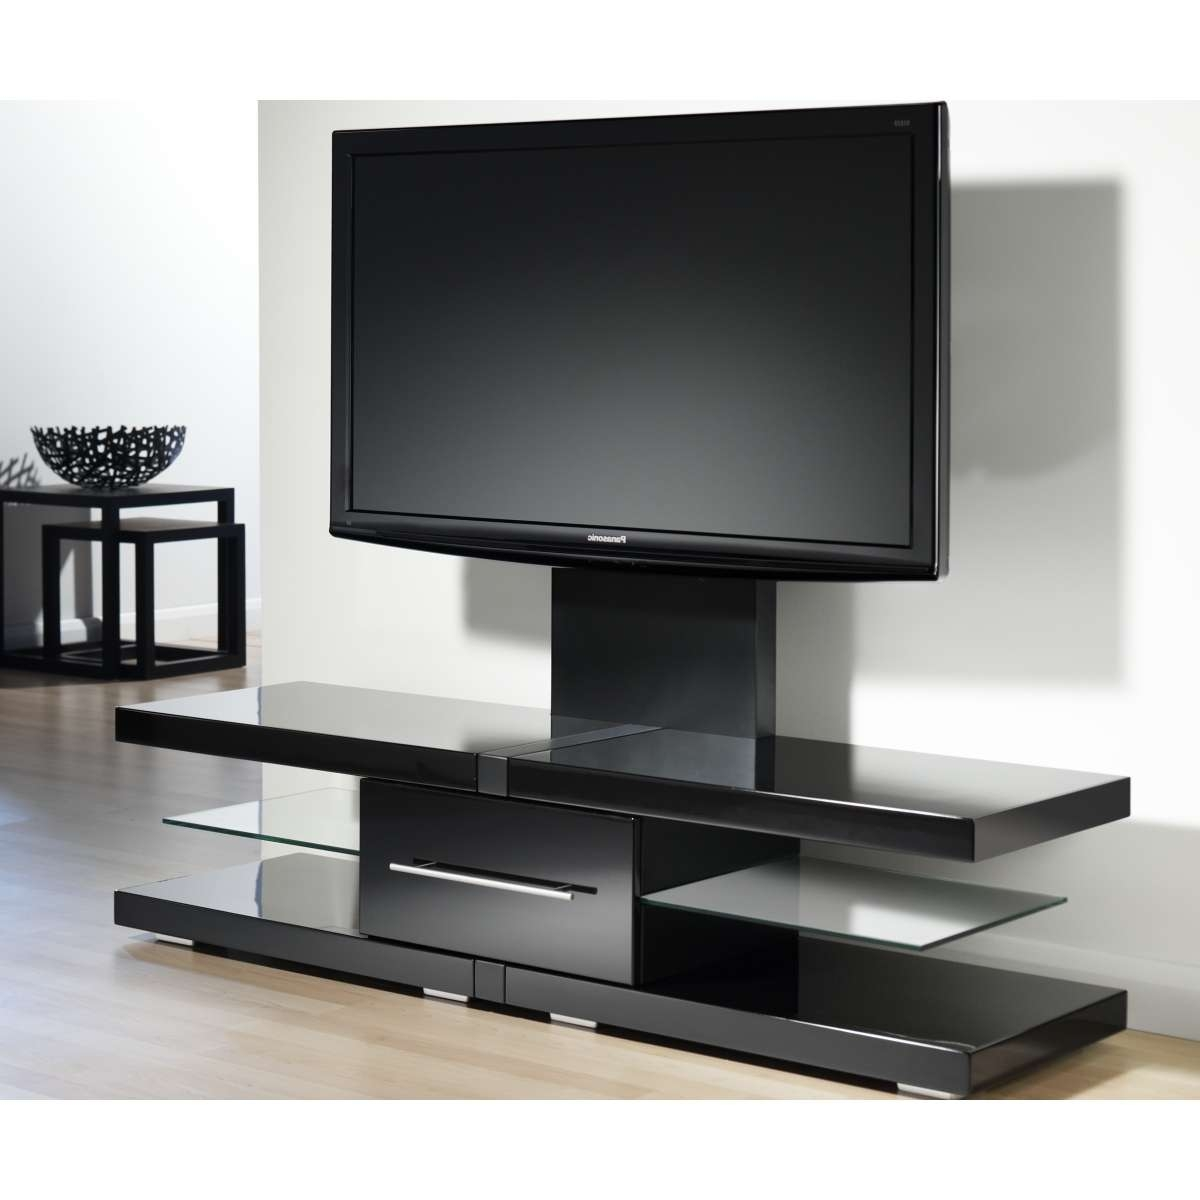 Beautiful Flat Screen Tv Stands With Mounts 38 For Simple Home Regarding Tv Stands 38 Inches Wide (View 11 of 15)